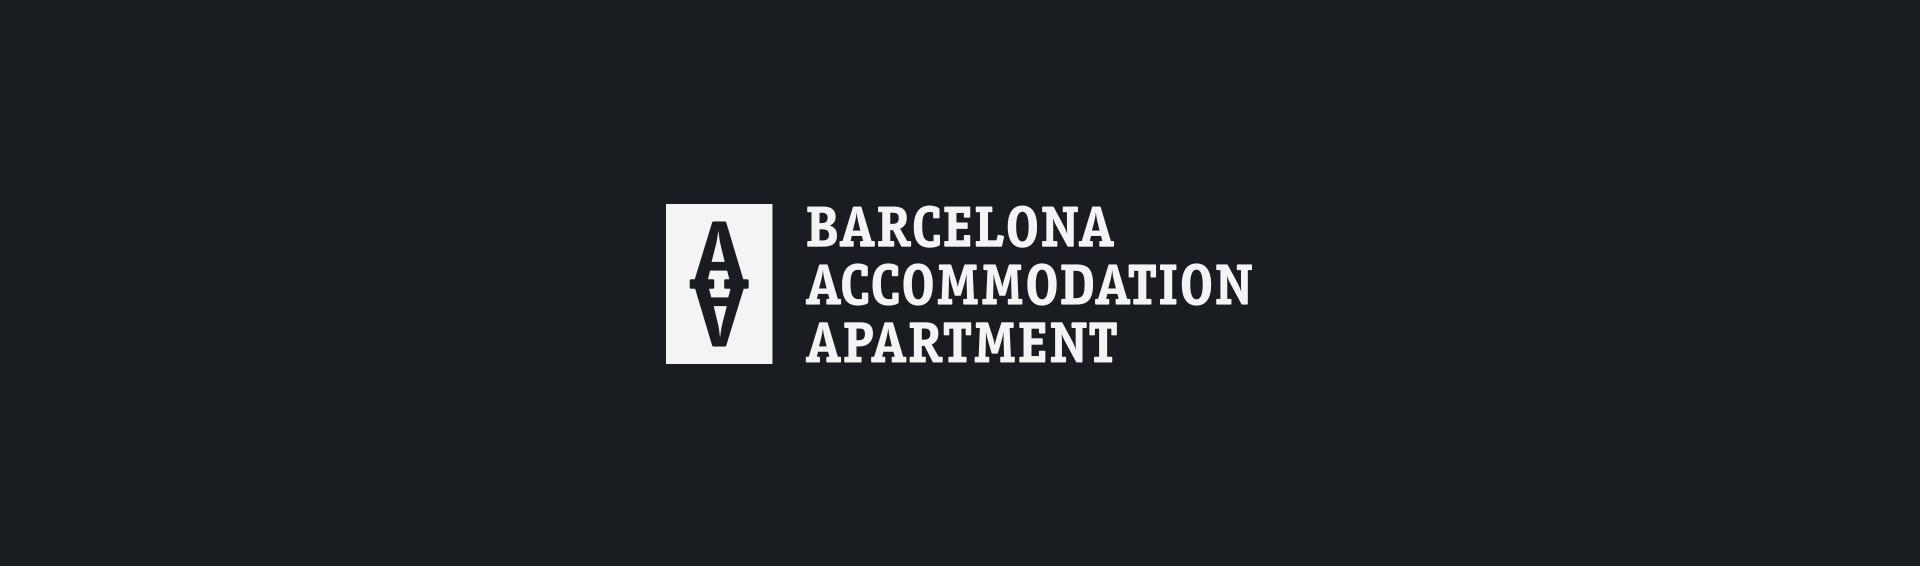 barcelona_logotype_identity_corporate